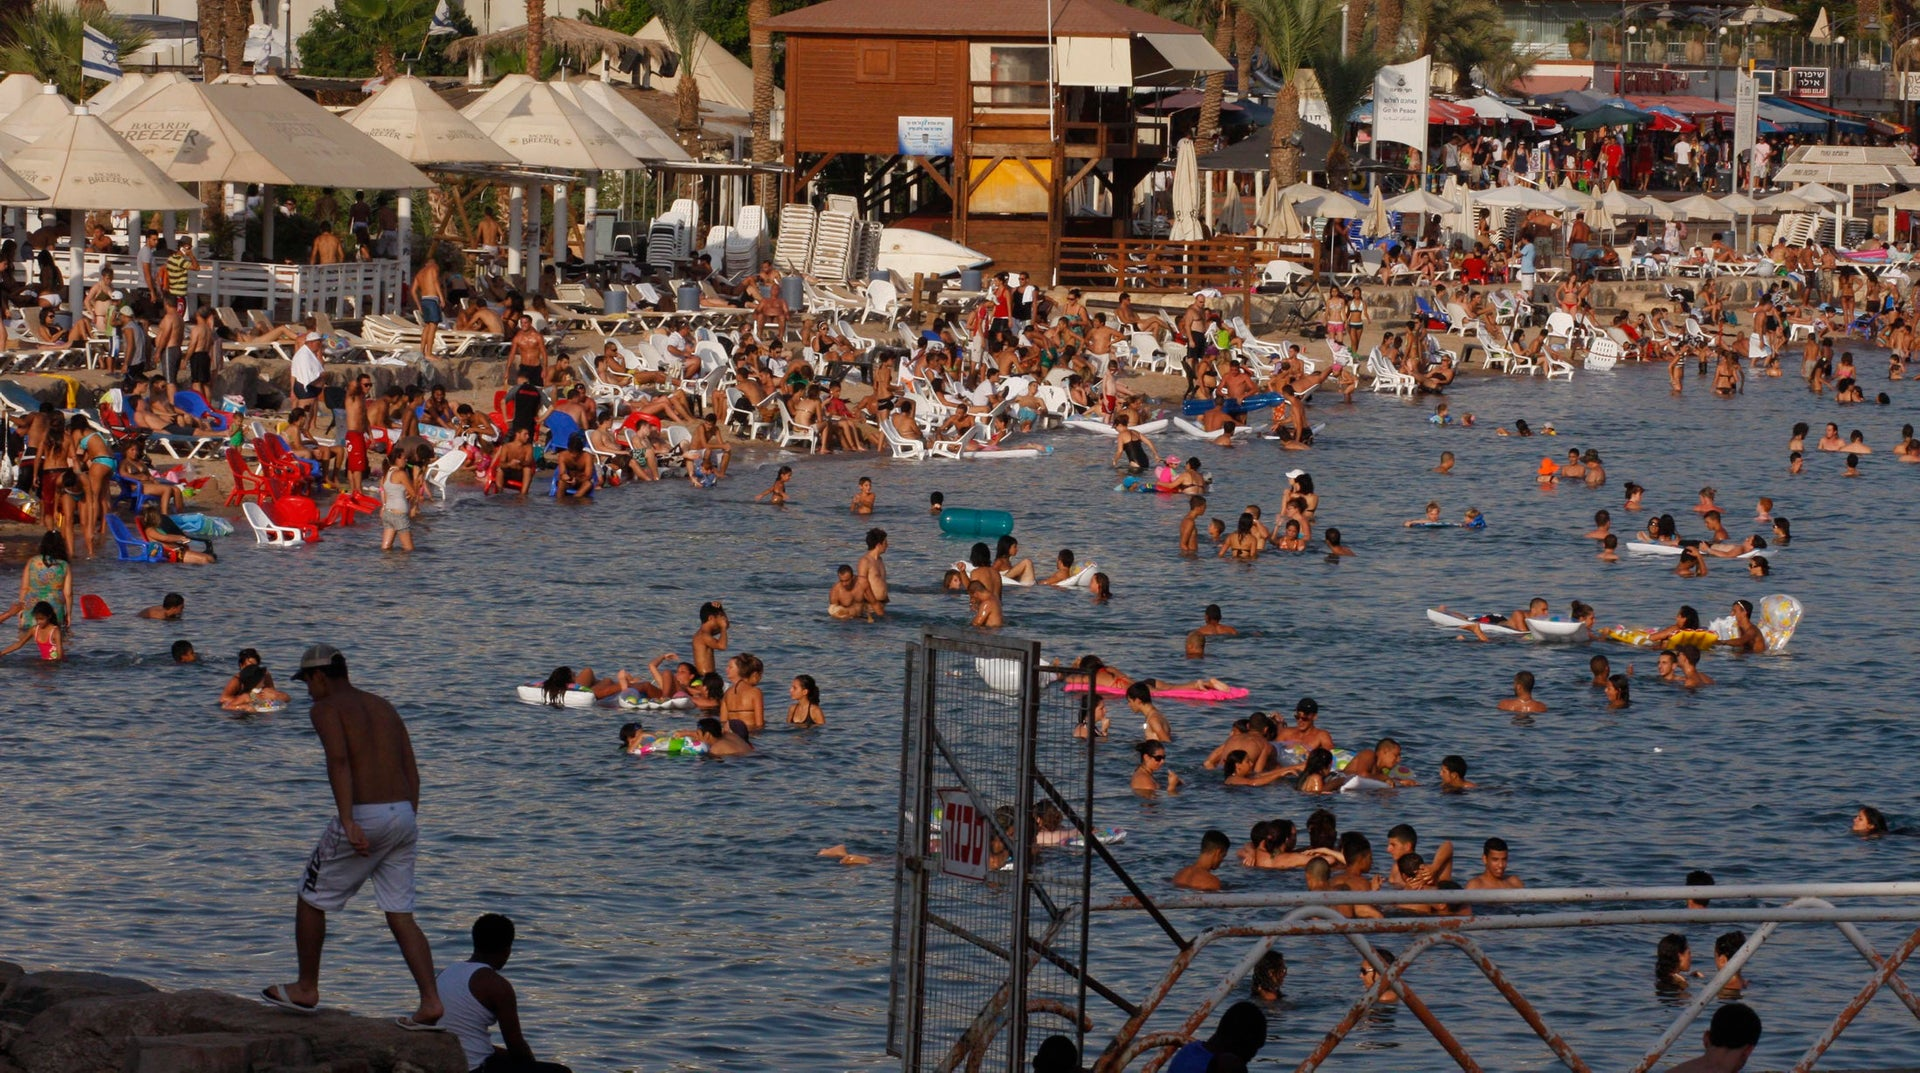 Eilat in peak tourist season - the summer.